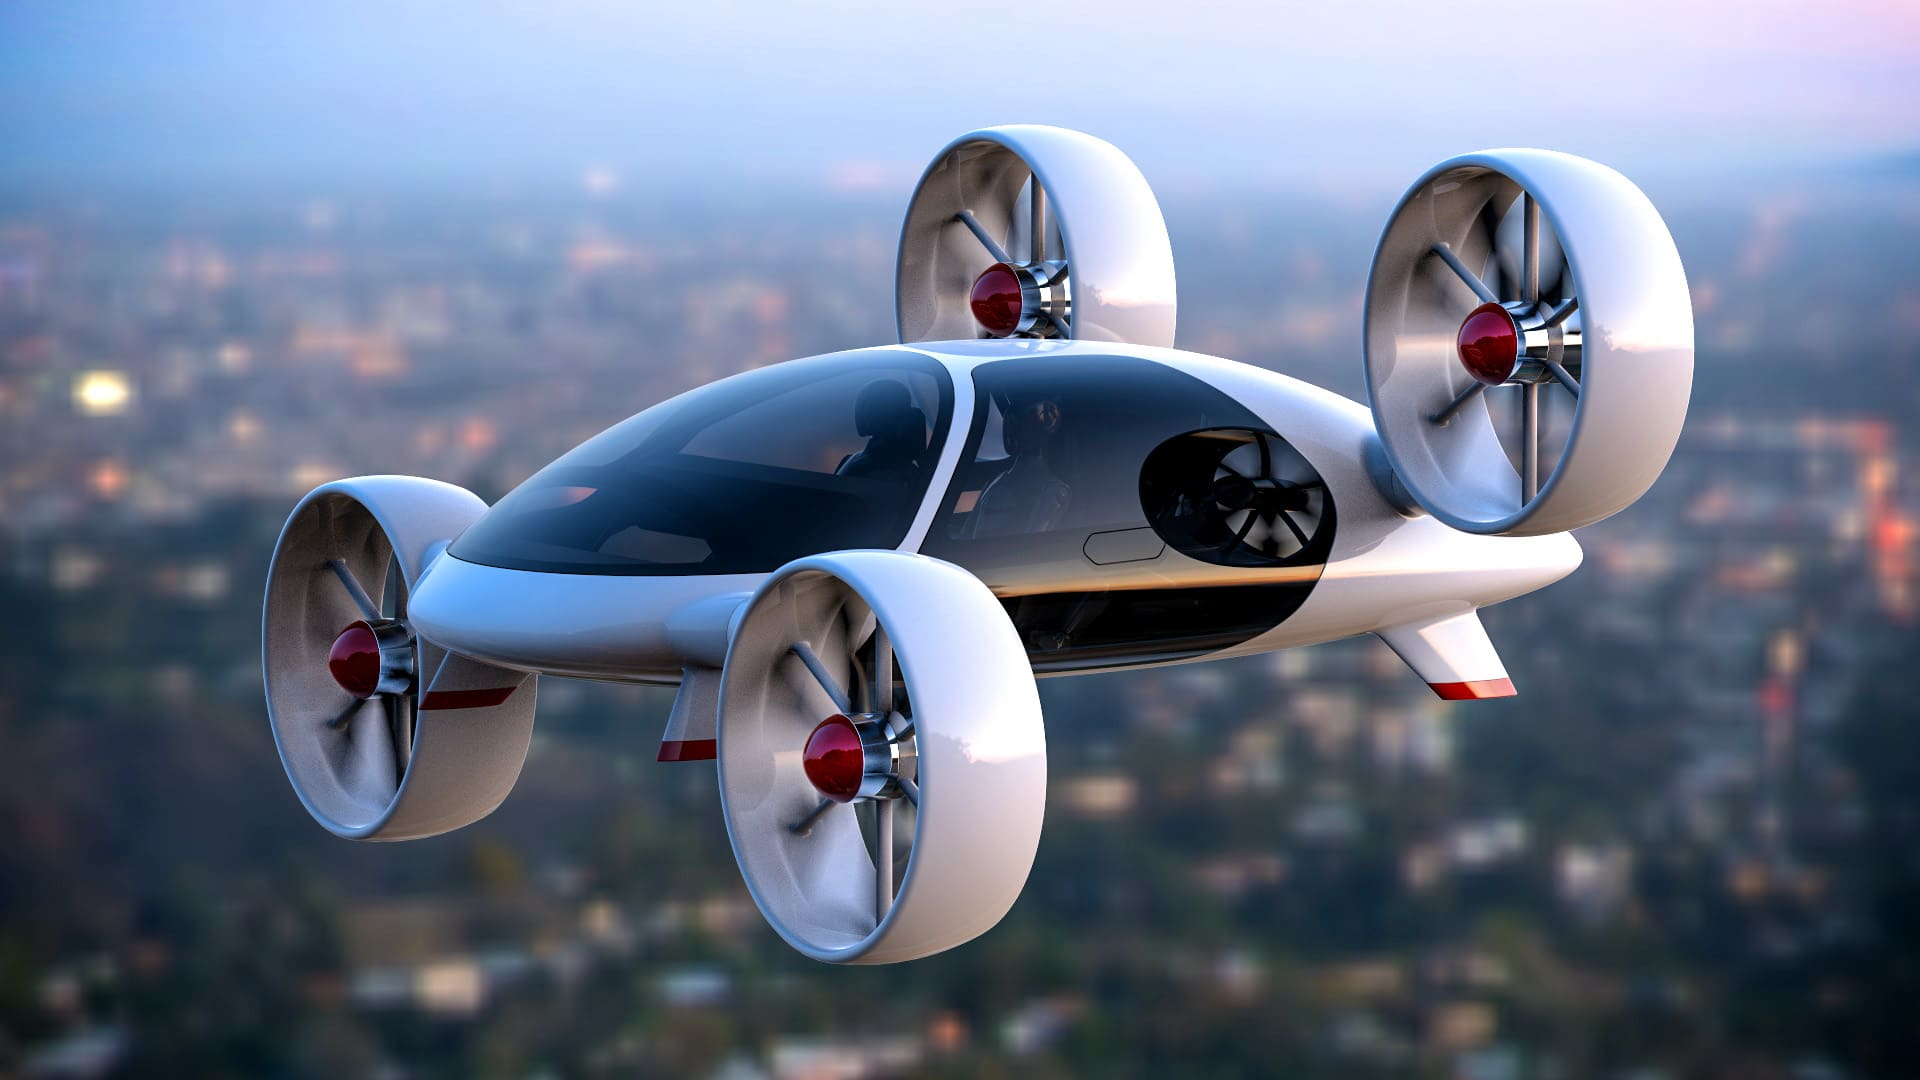 Boeing Set To Revolutionize Travel With Its Flying Car